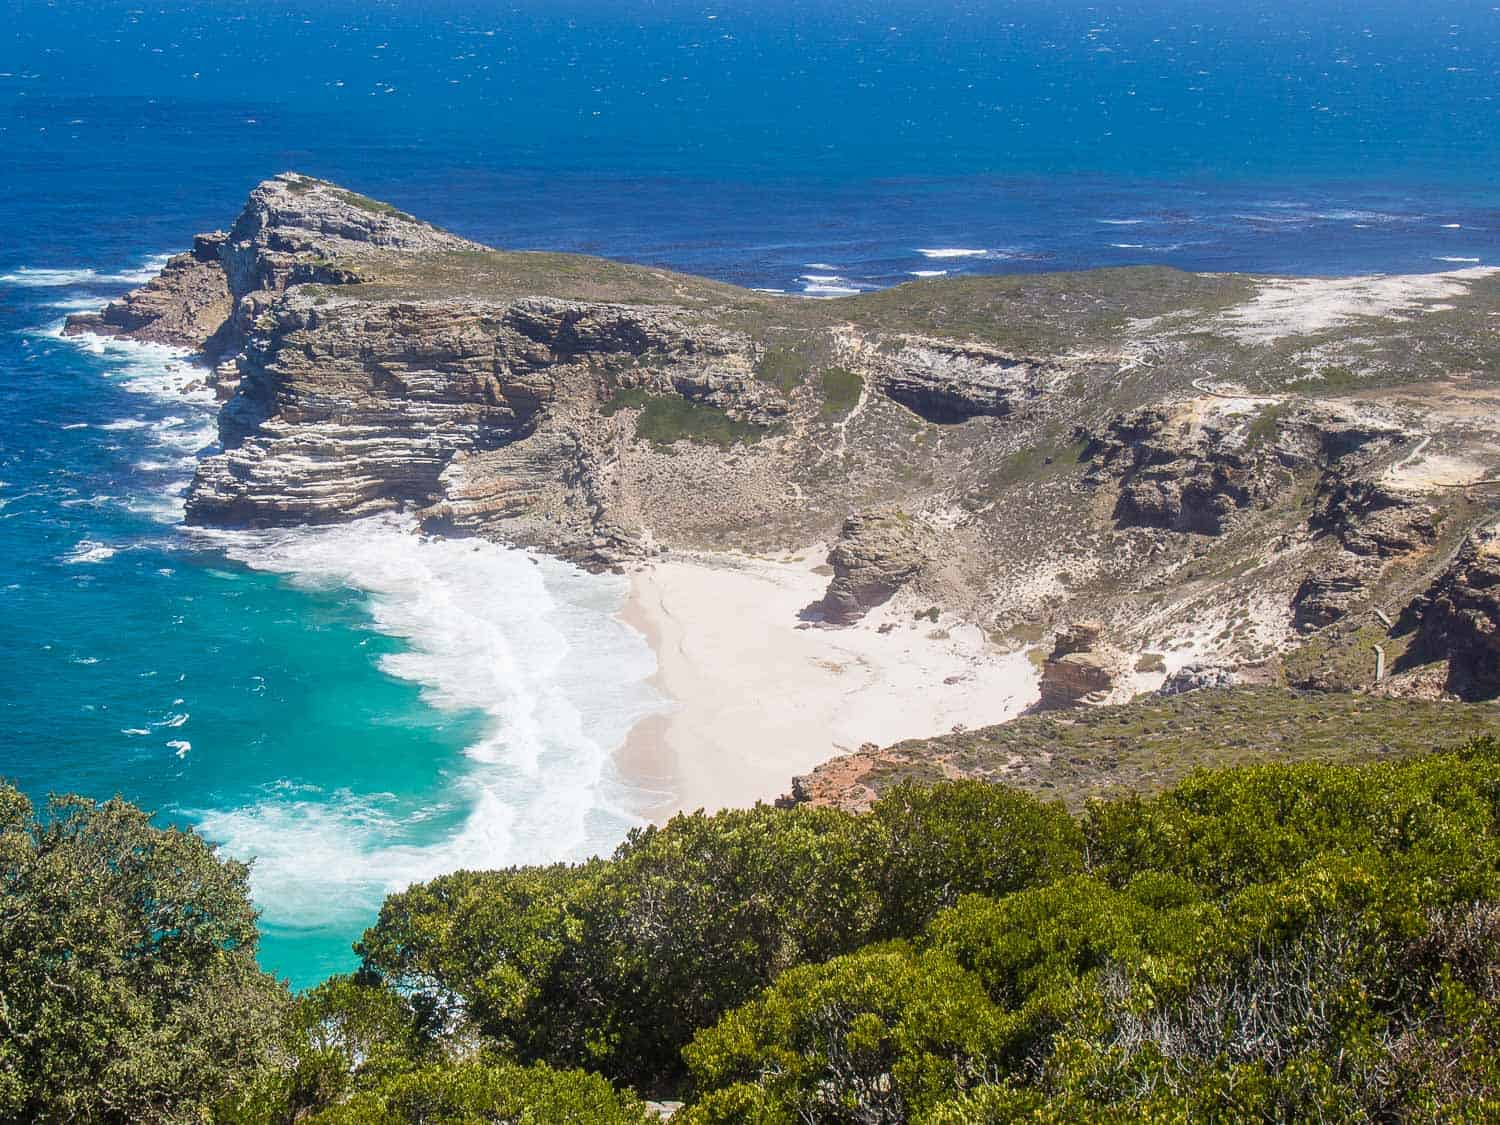 Diaz Beach at Cape Point on the Cape Peninsula drive in South Africa